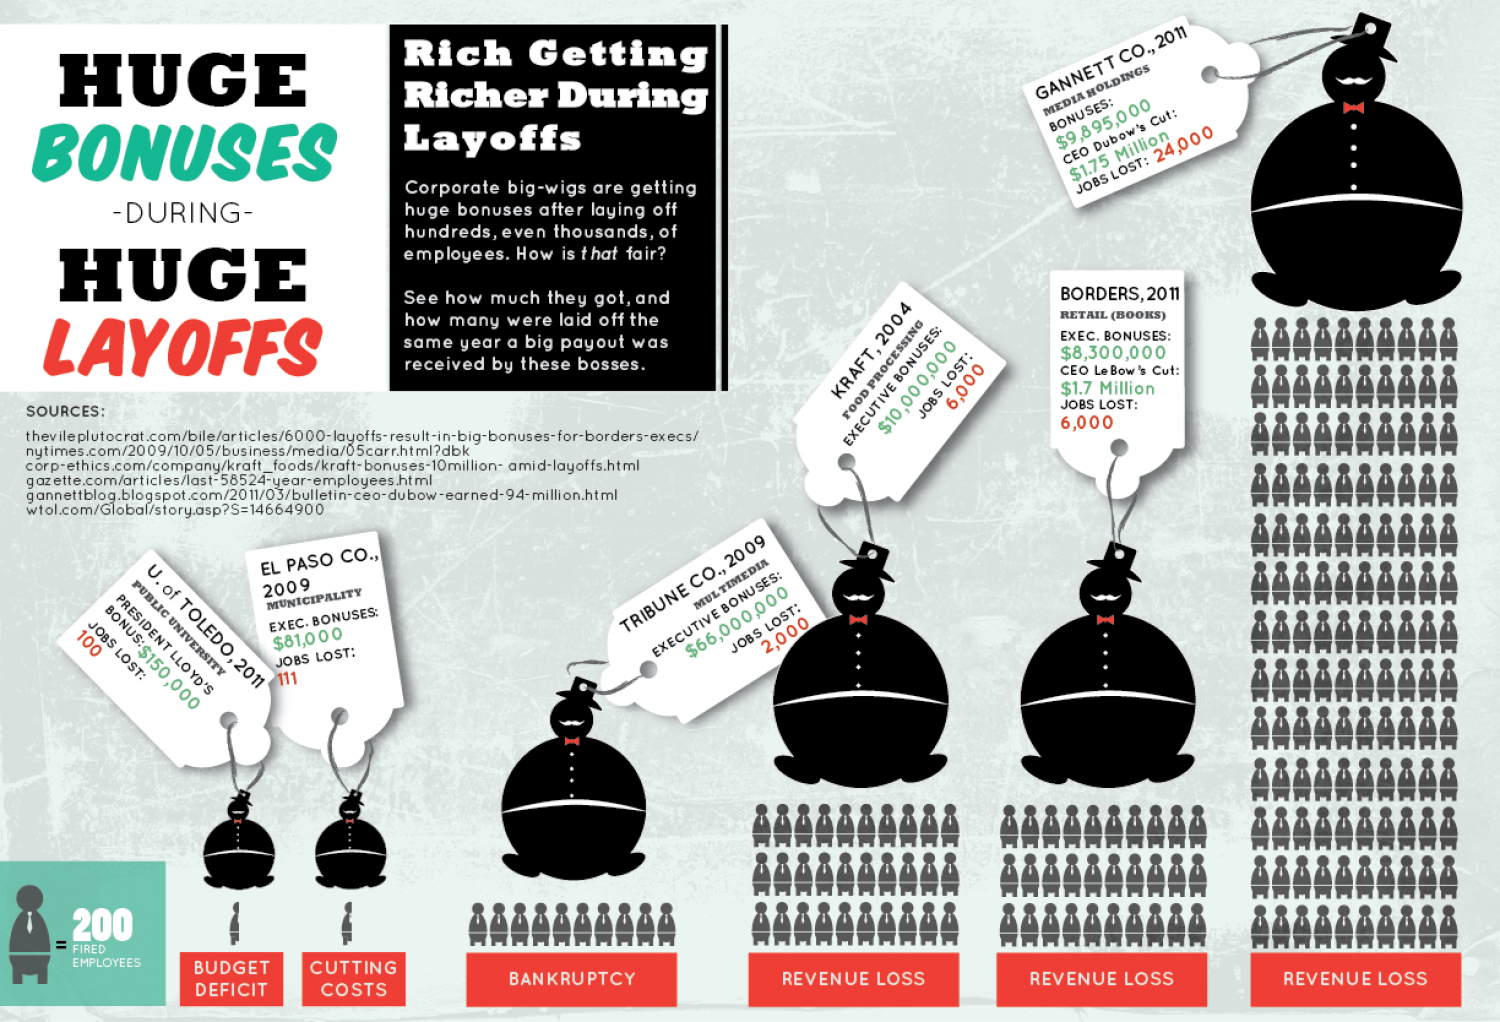 Huge Bonuses During Huge Layoffs  Infographic